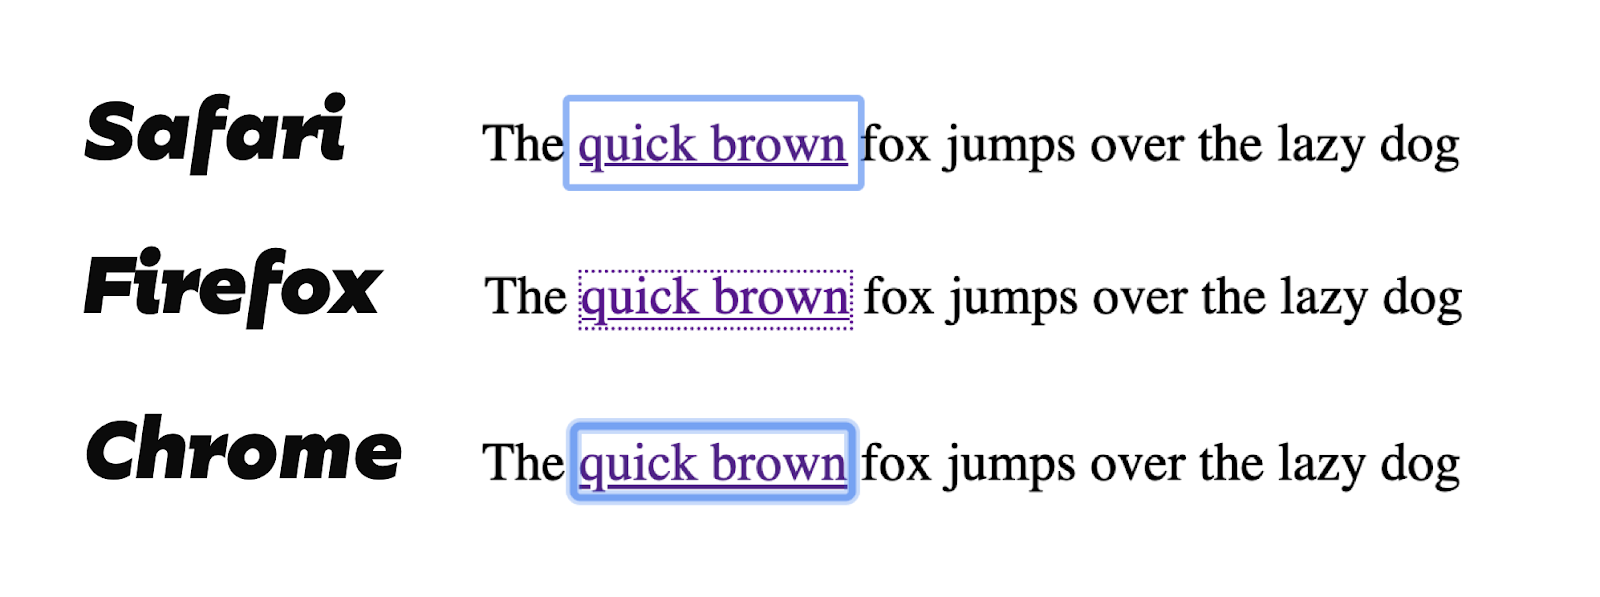 Focus rings in safari, firefox and chrome browsers